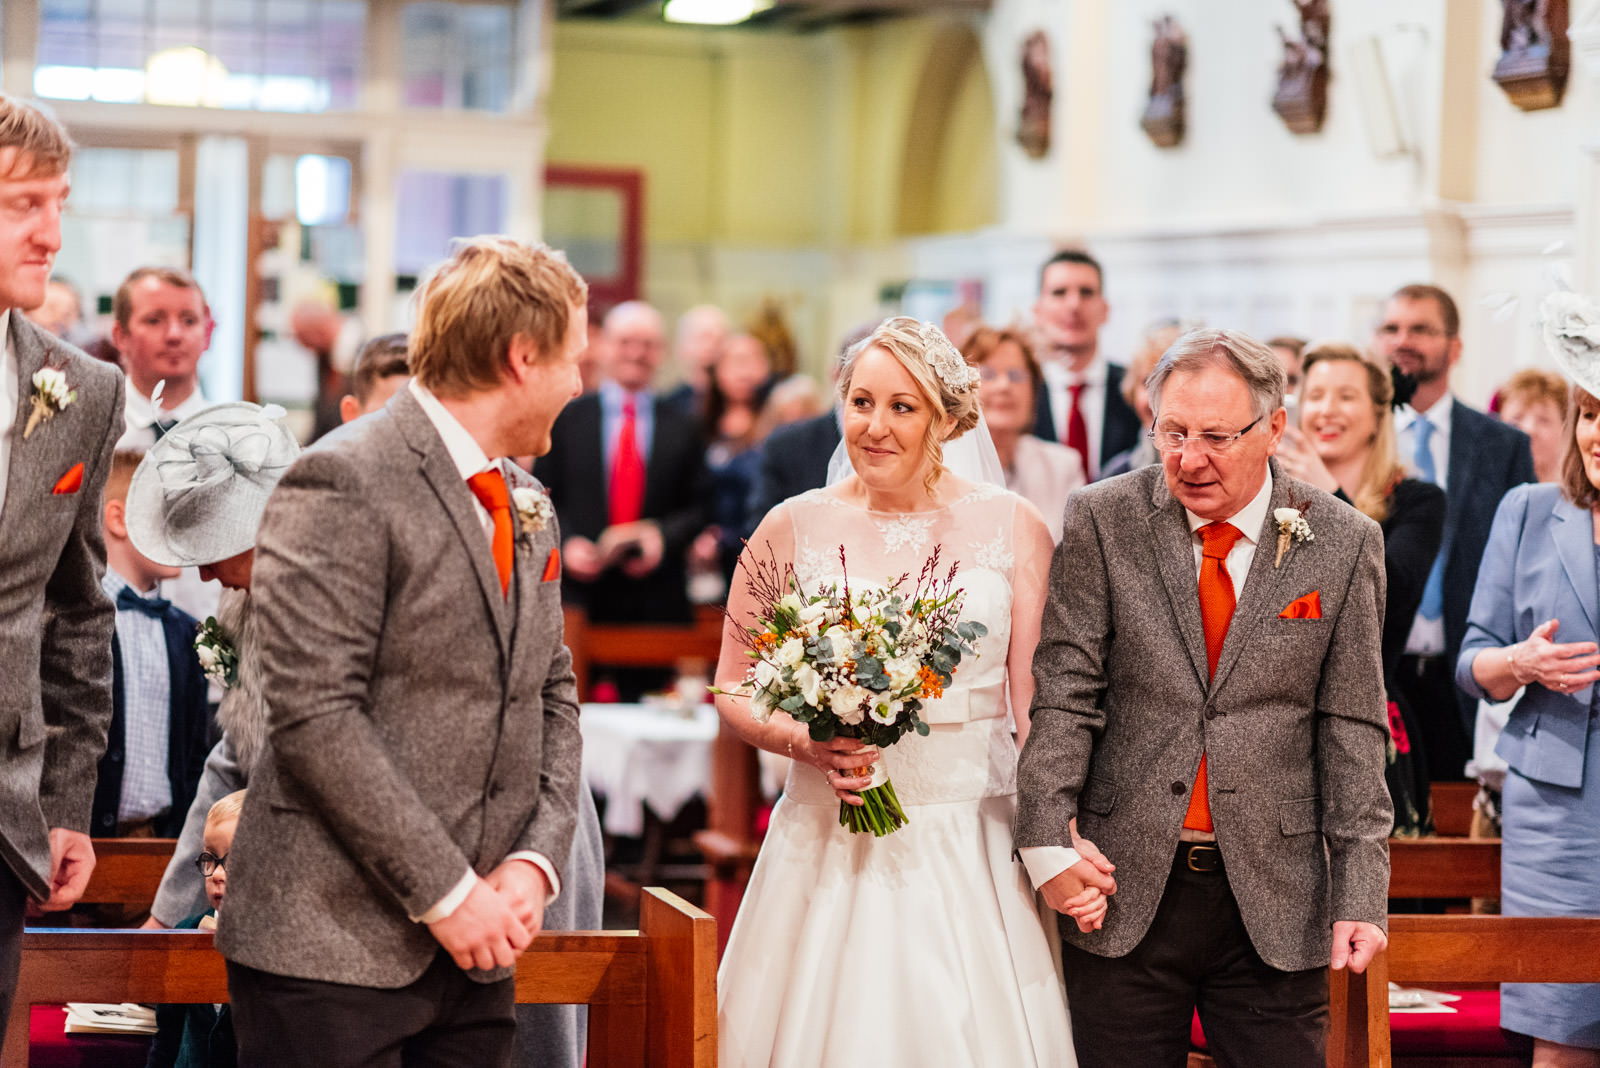 Bride sees groom for first time in church